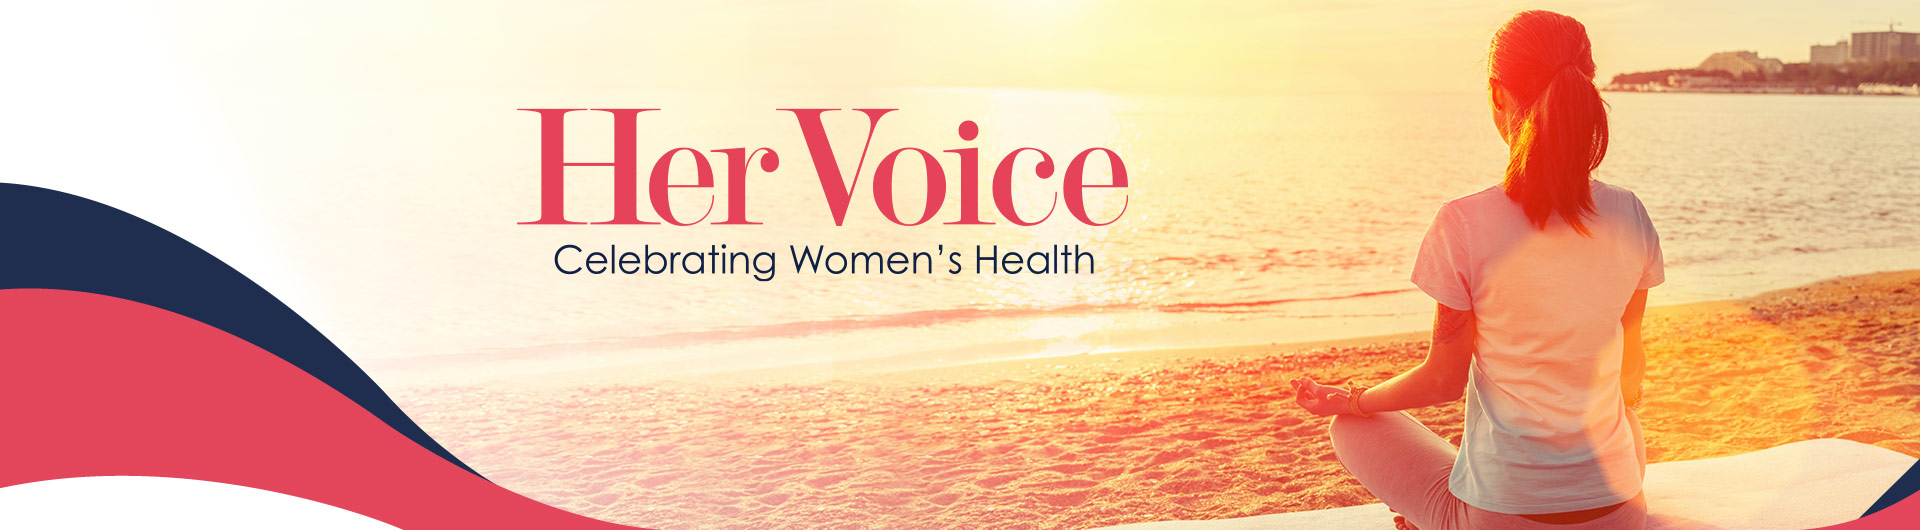 her-voice celebrating womens health